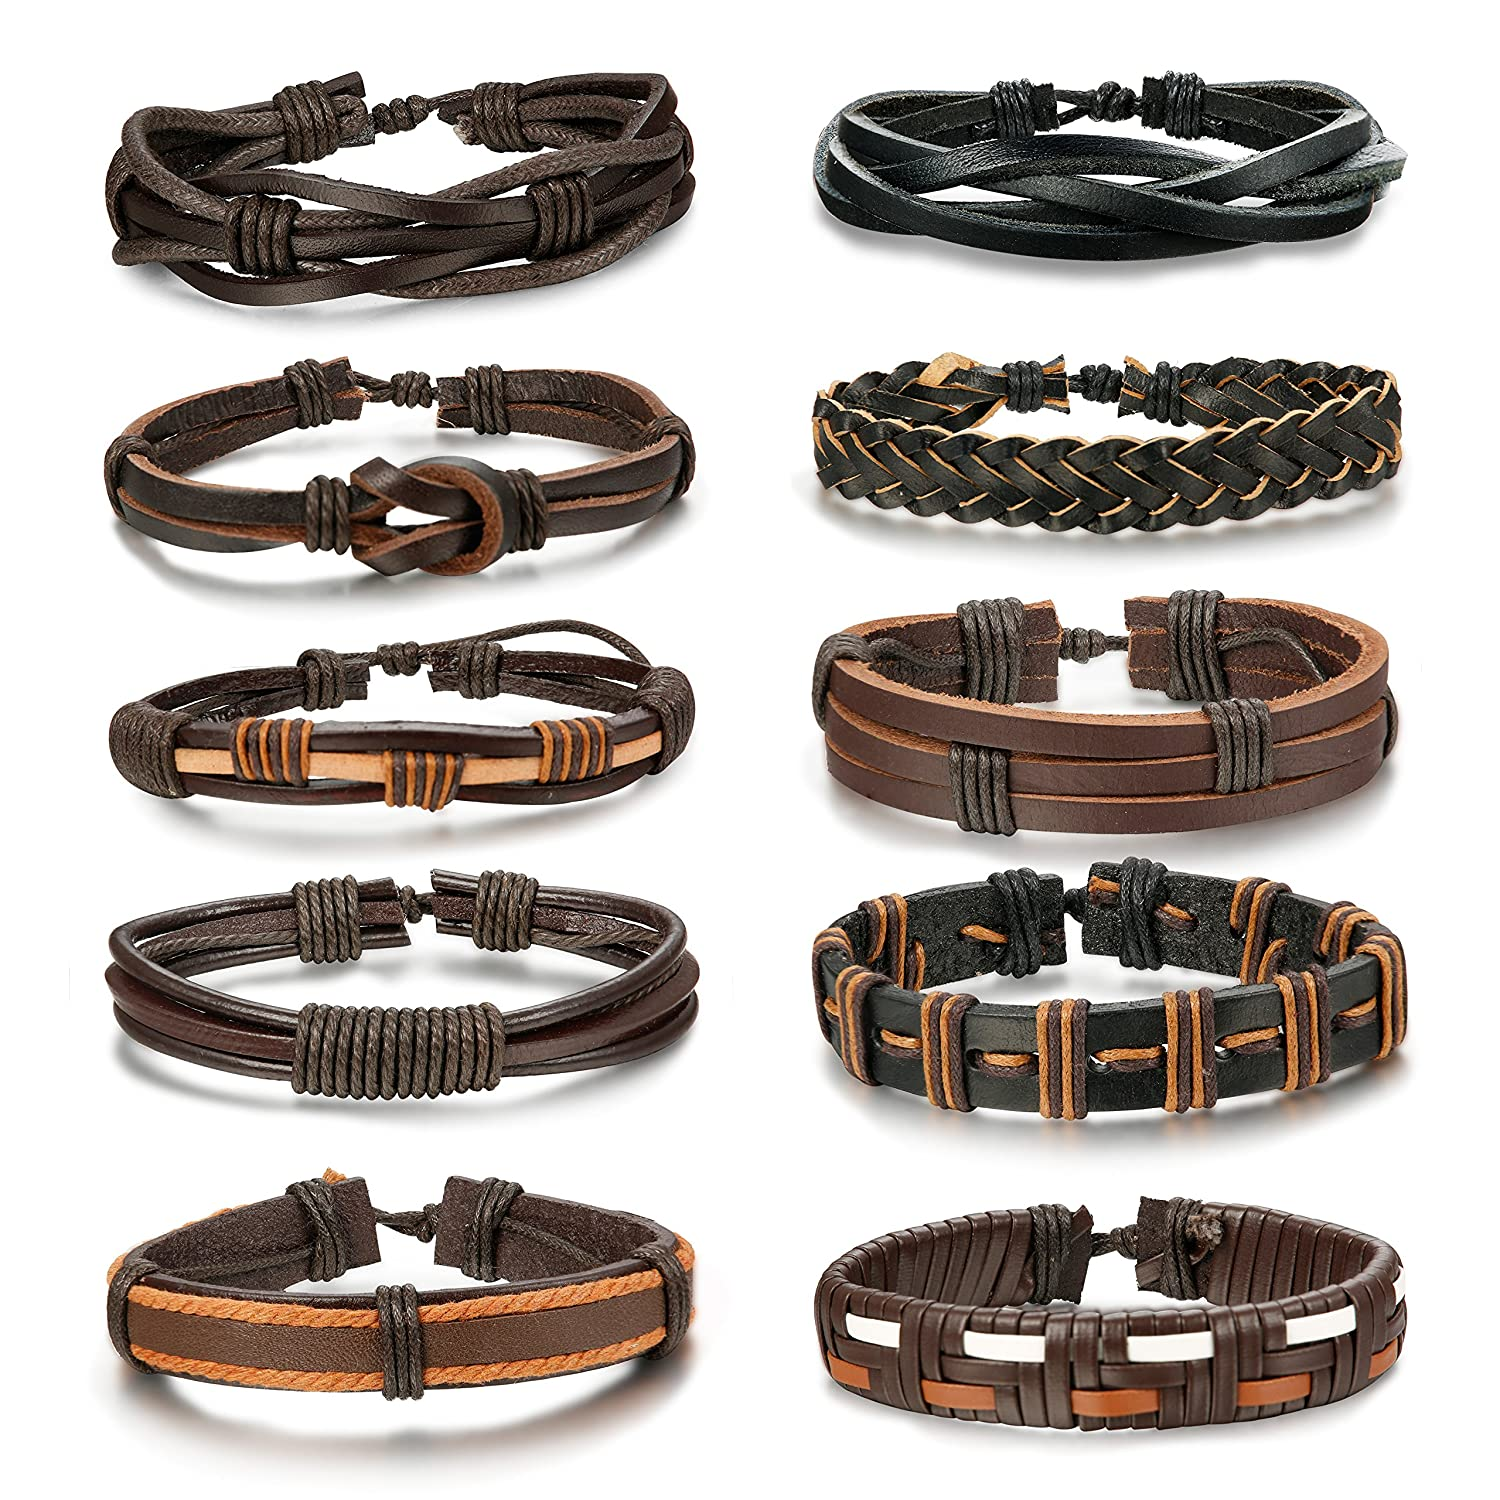 LOYALLOOK 6-12pcs Leather Bracelet for Men Cuff Bracelet Set Adjustable TI091401-2set